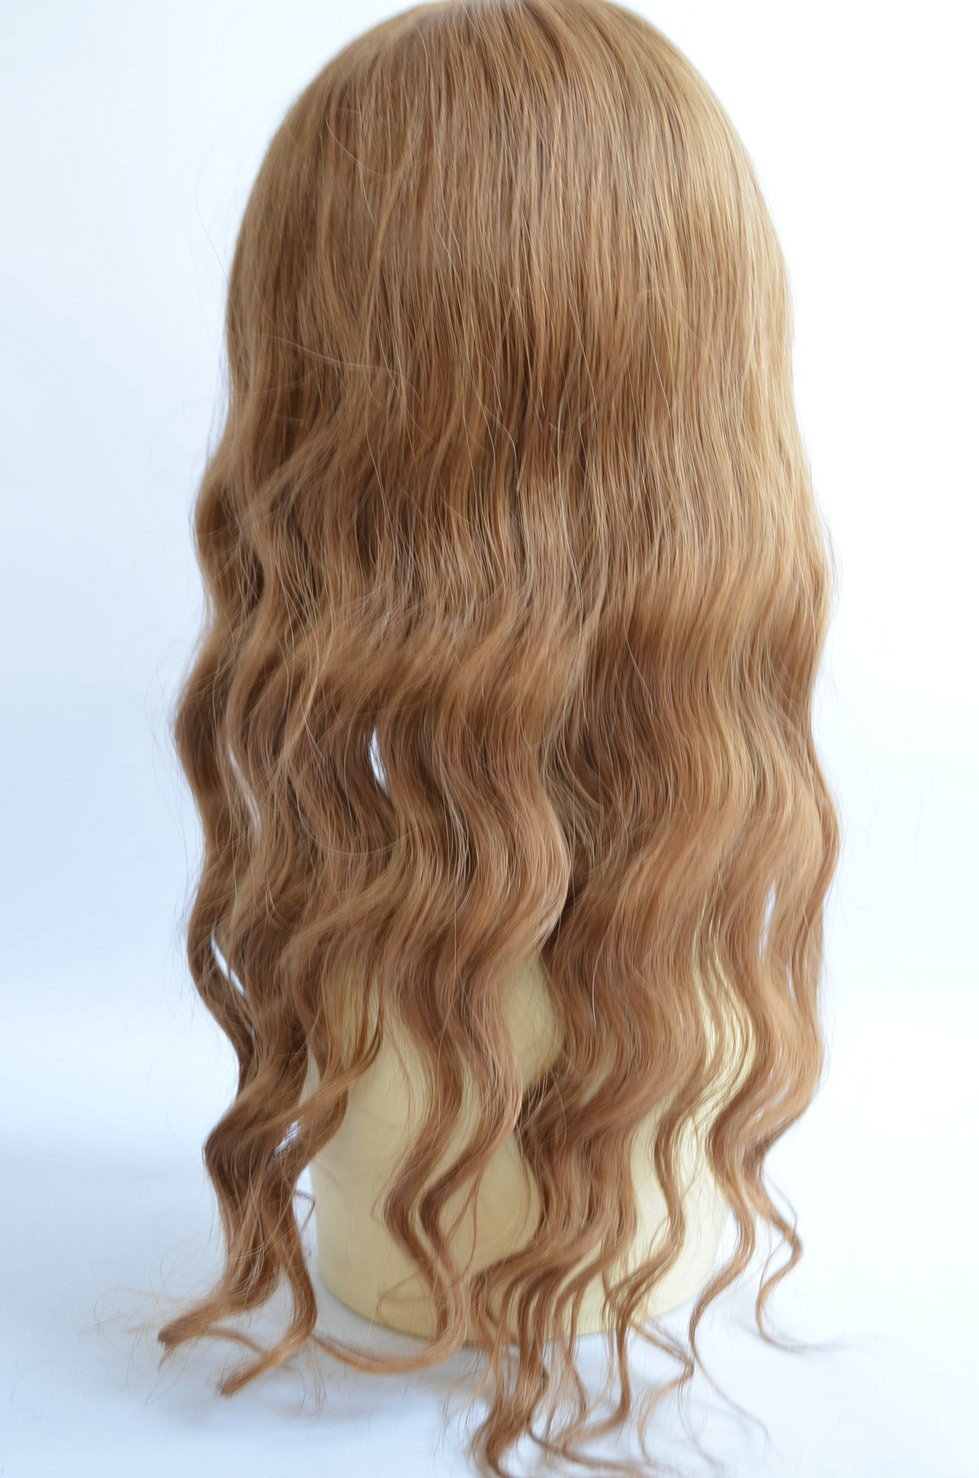 brazilian virgin hair pu skin top swiss lace wig